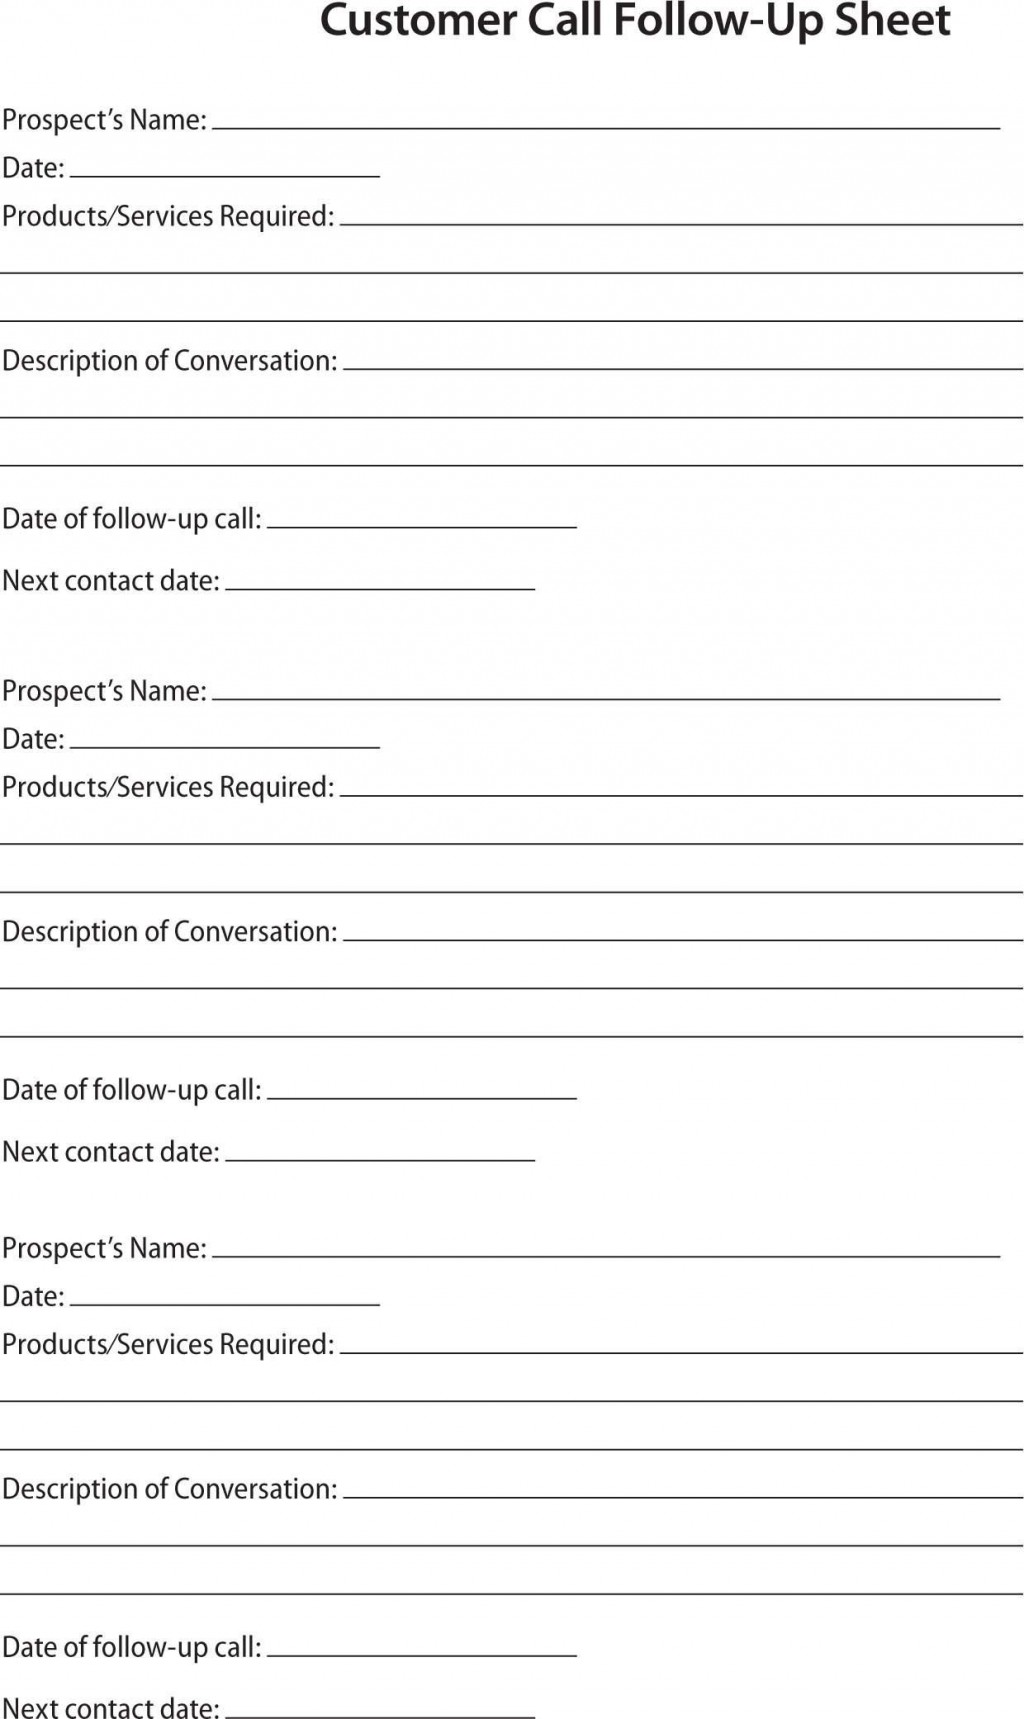 005 Exceptional Client Information Form Template Excel Inspiration Large